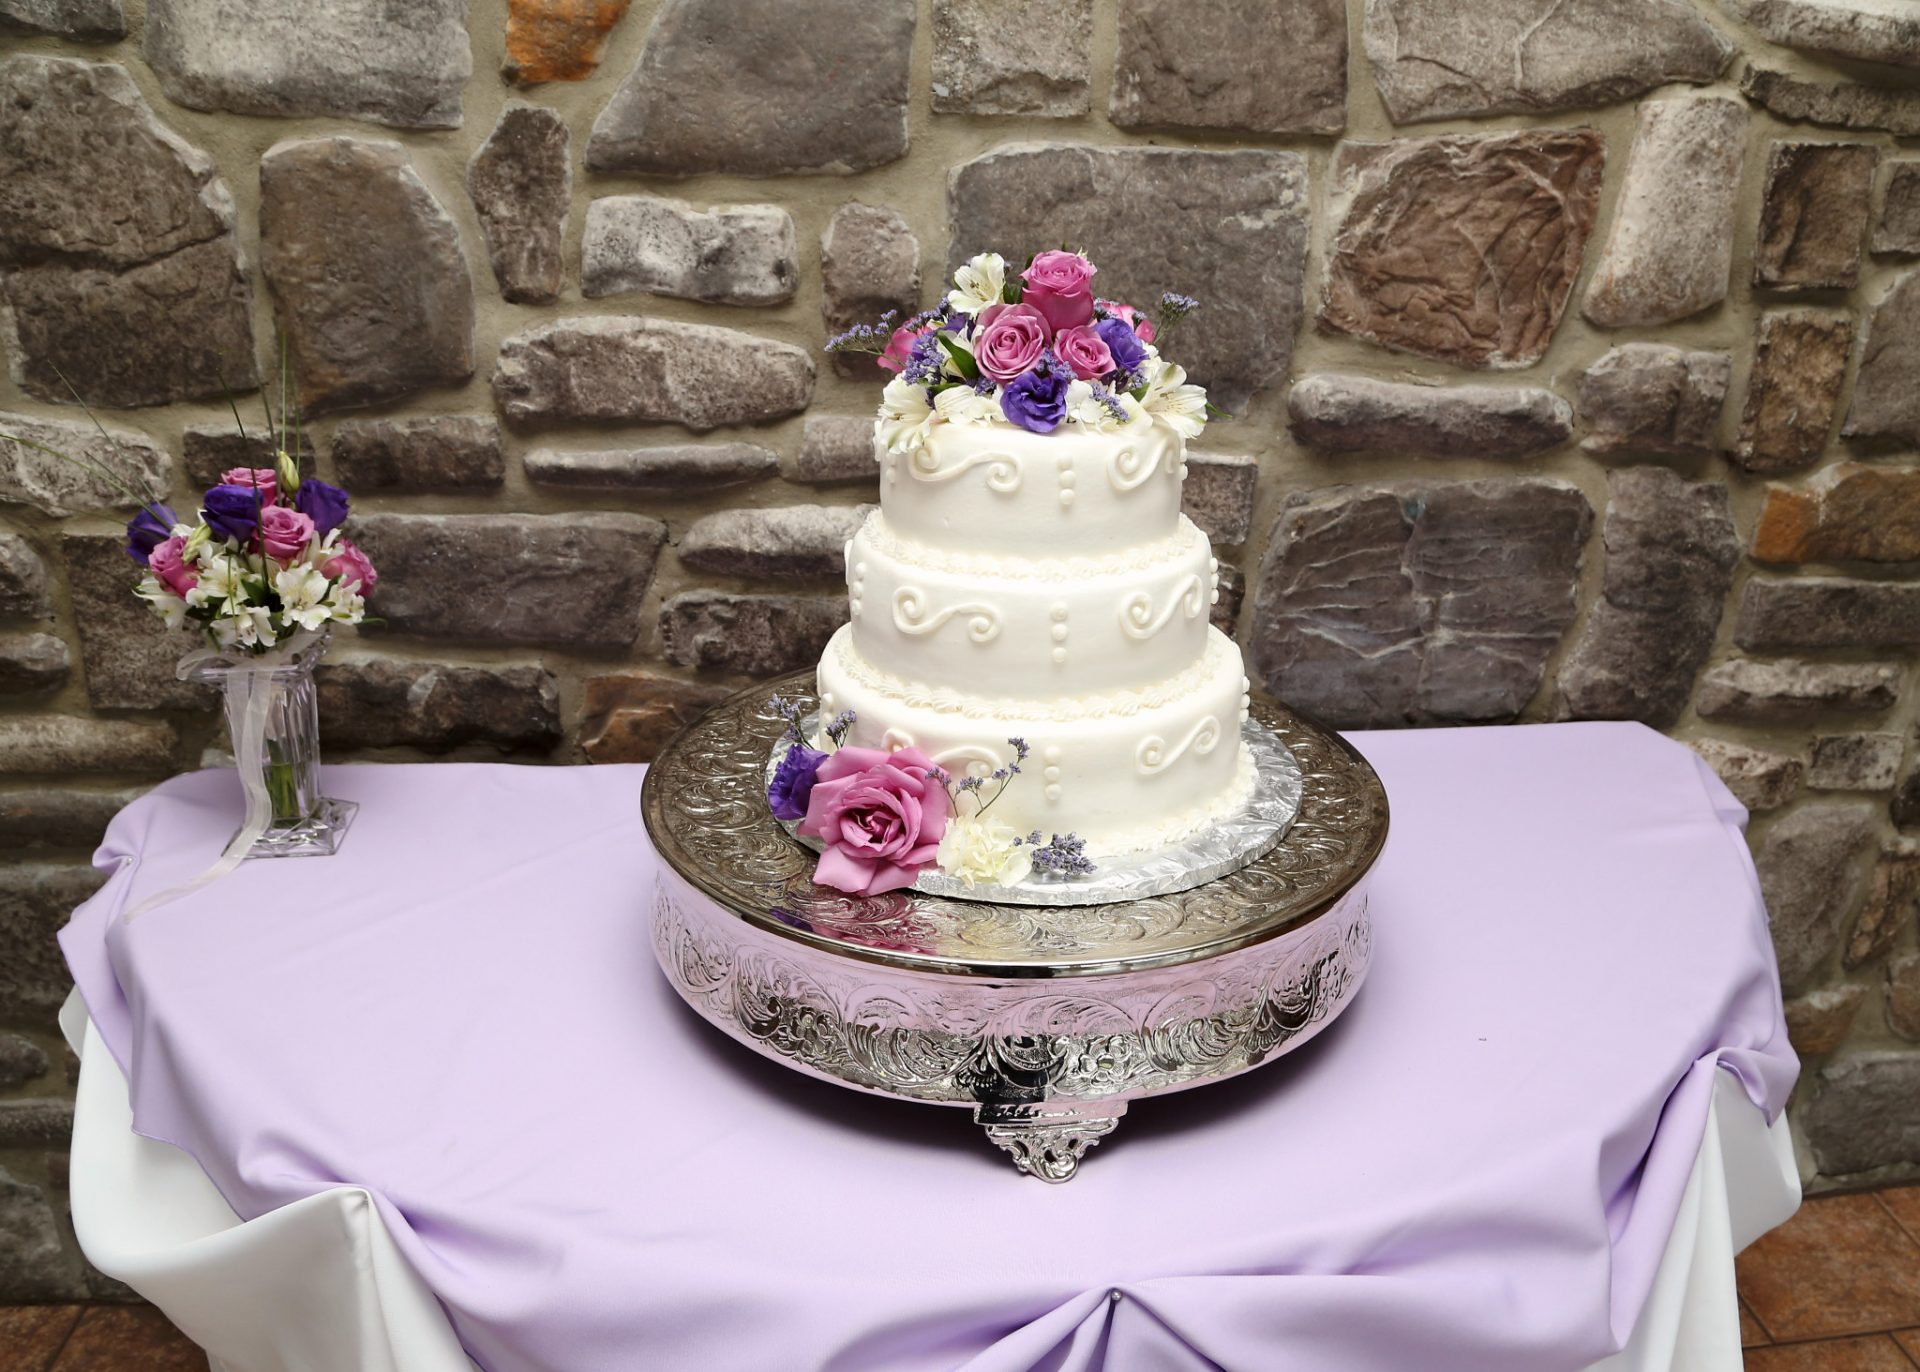 Three tiered wedding cake with white cream icing and decorated with pink and purple flowers. The cake sits on a silver cake display stand.